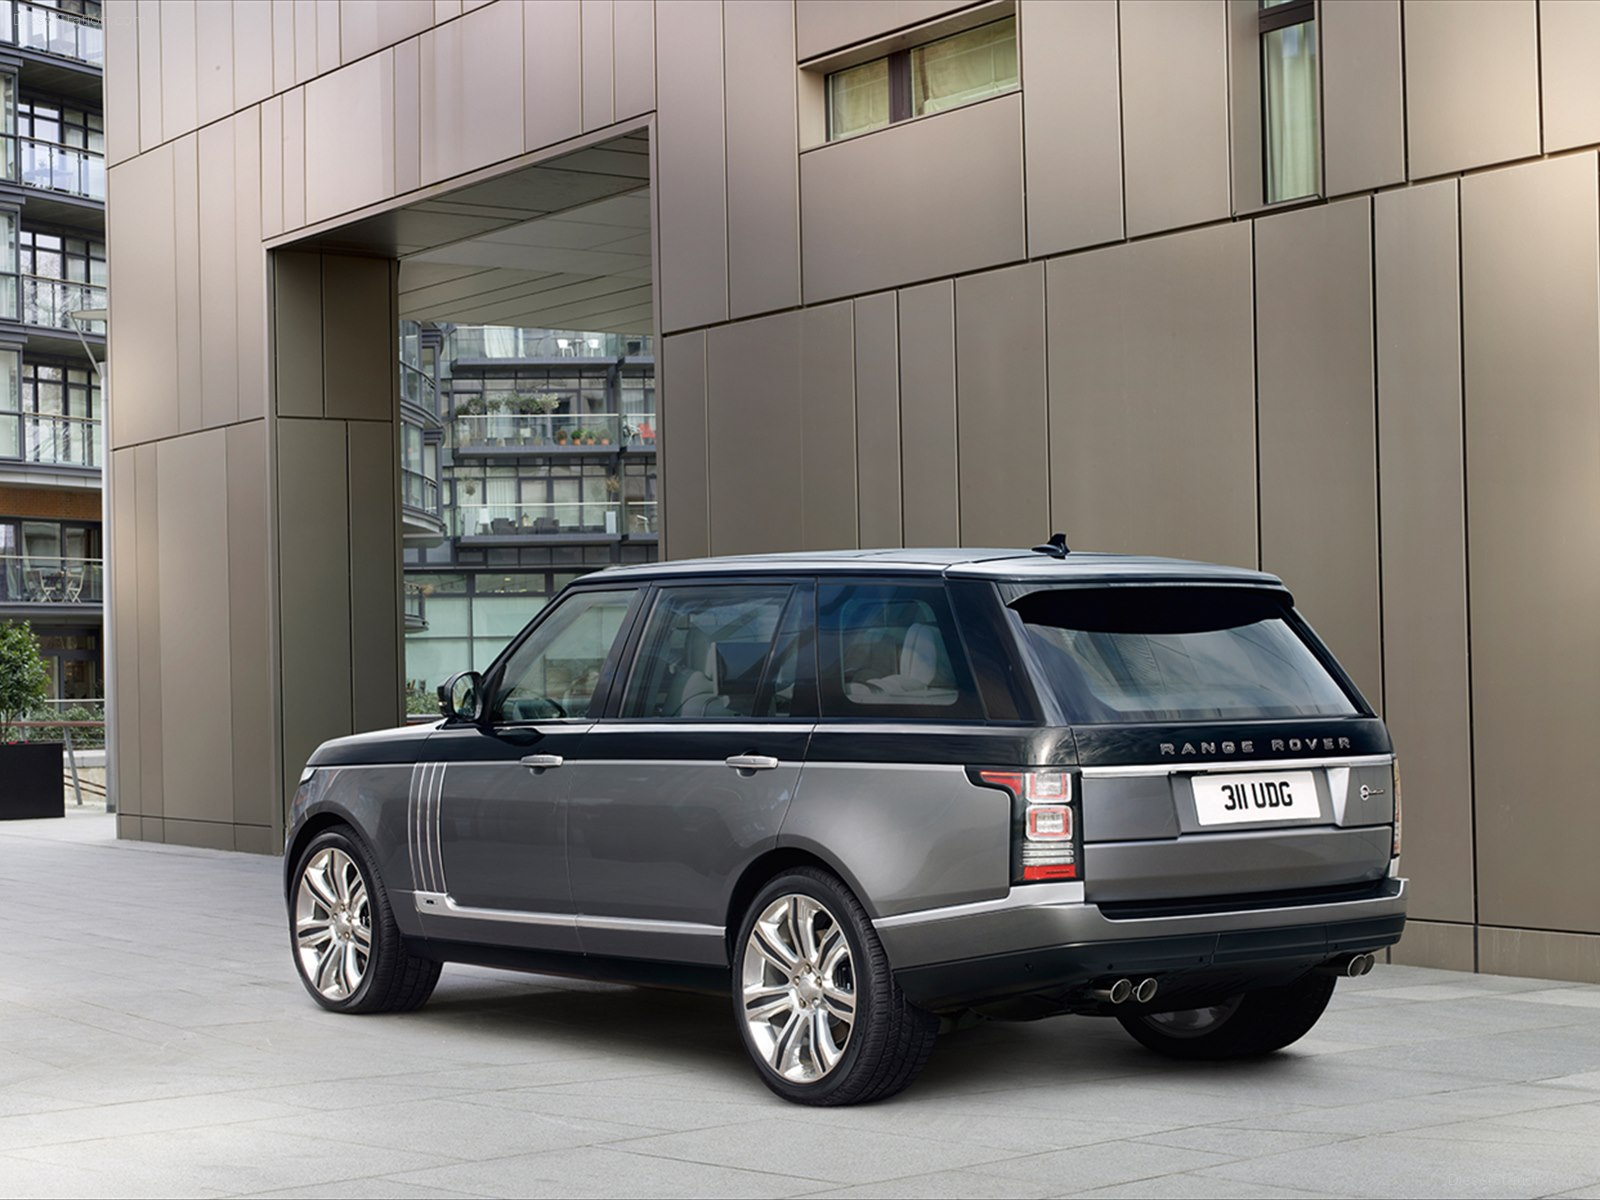 2017 Land Rover Range Rover SV Autobiography new photo - 2